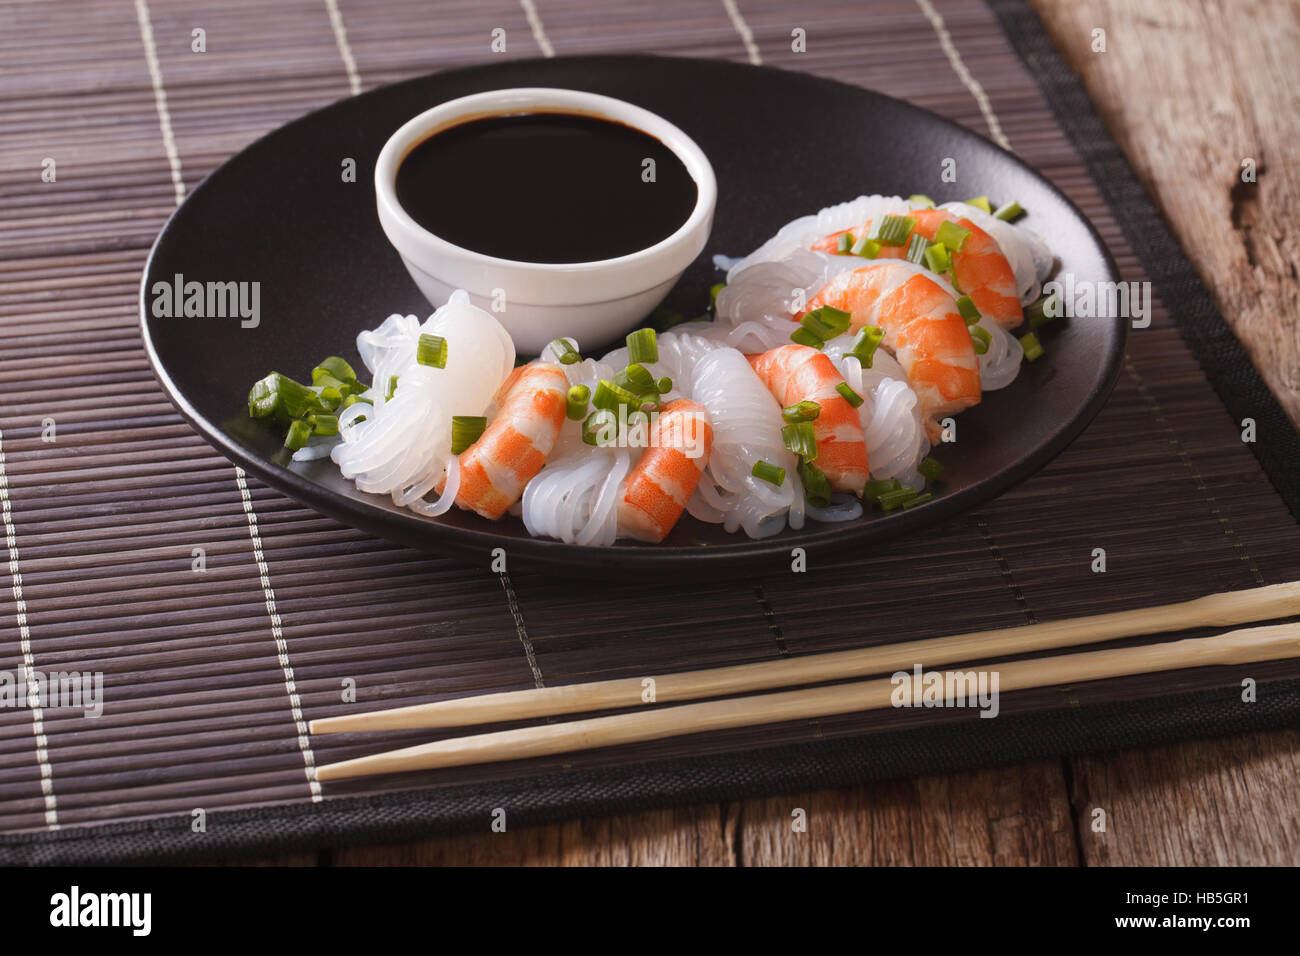 Japanese food: Shirataki with prawns, spring onions and soy sauce on a plate close-up. horizontal Stock Photo